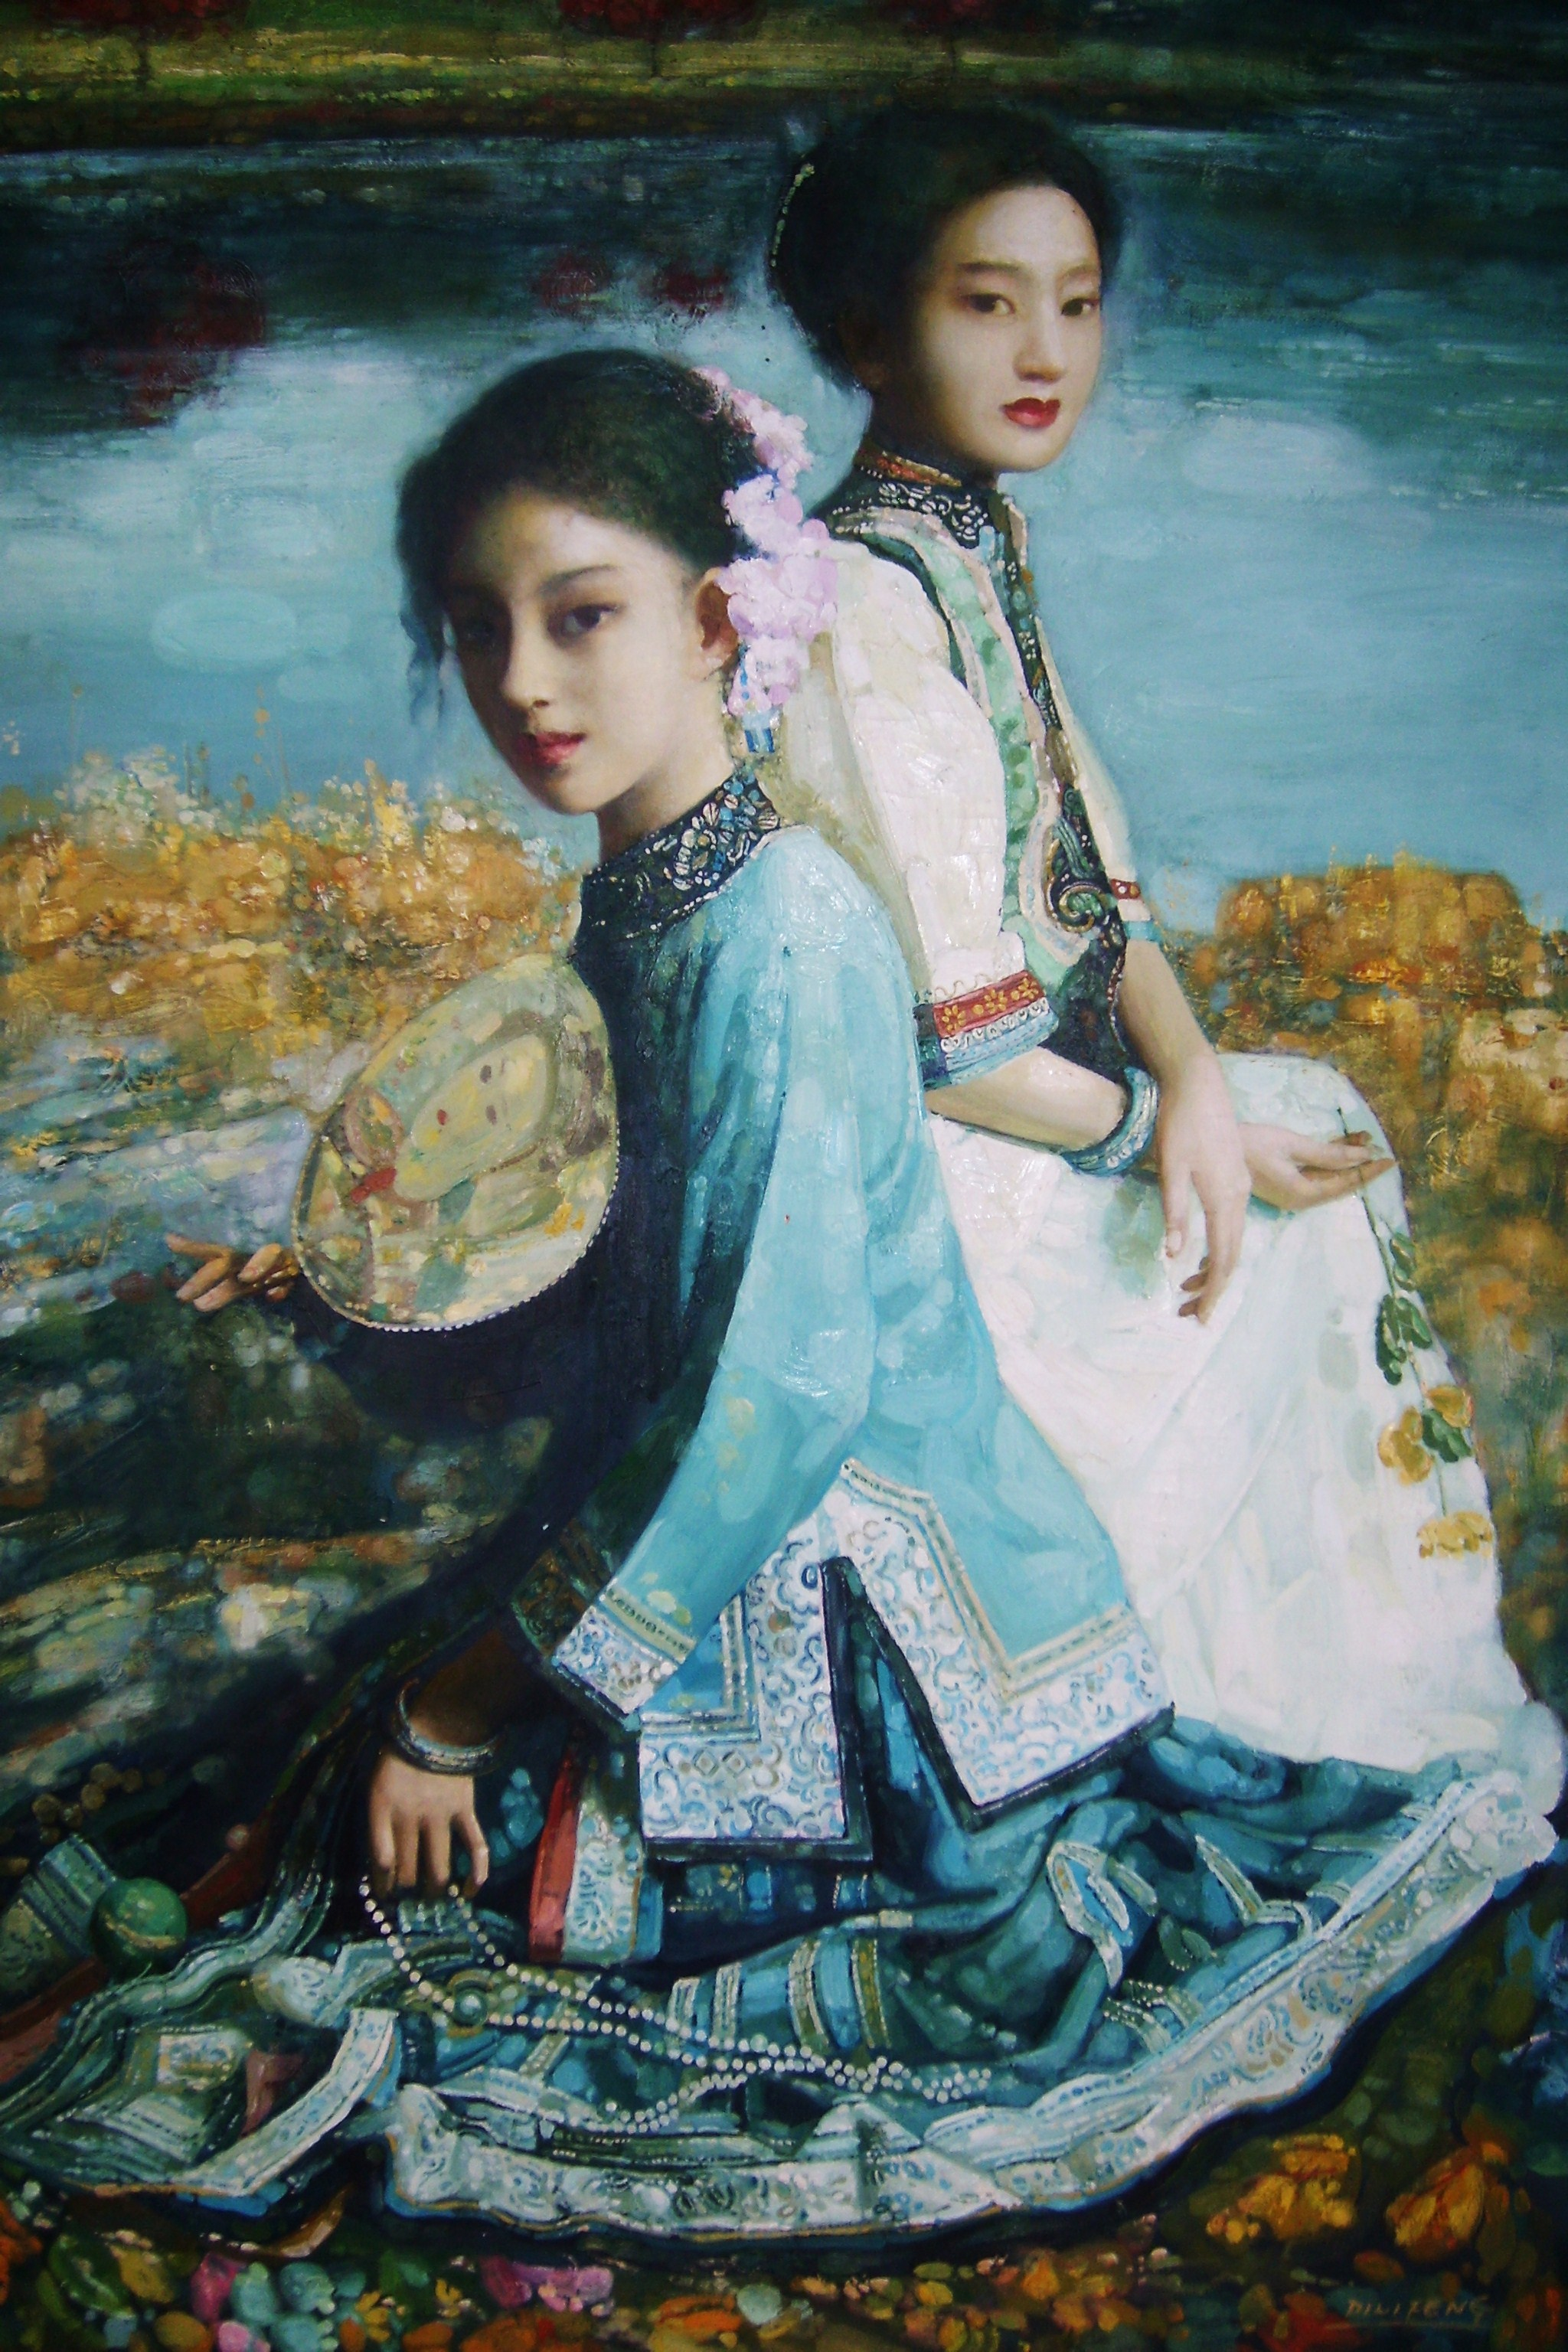 Untitled Asian Girls 2002